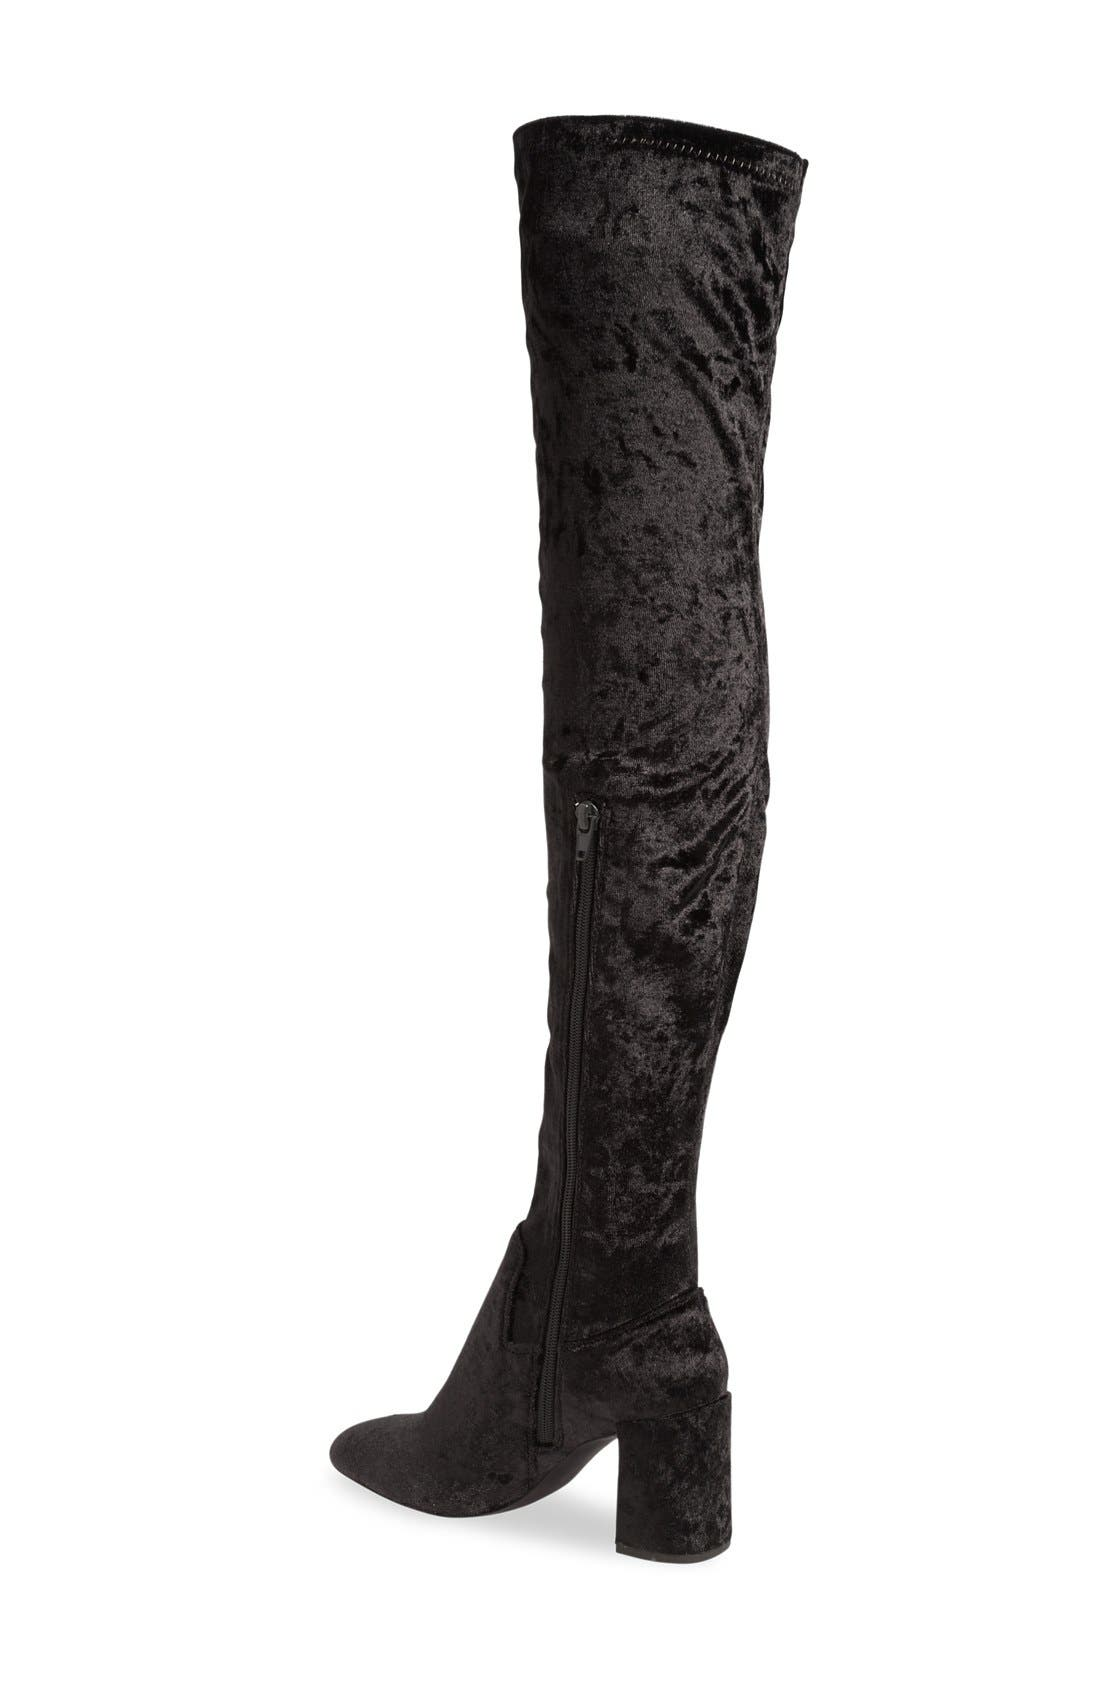 JEFFREY CAMPBELL, 'Cienega' Over the Knee Boot, Alternate thumbnail 2, color, 001